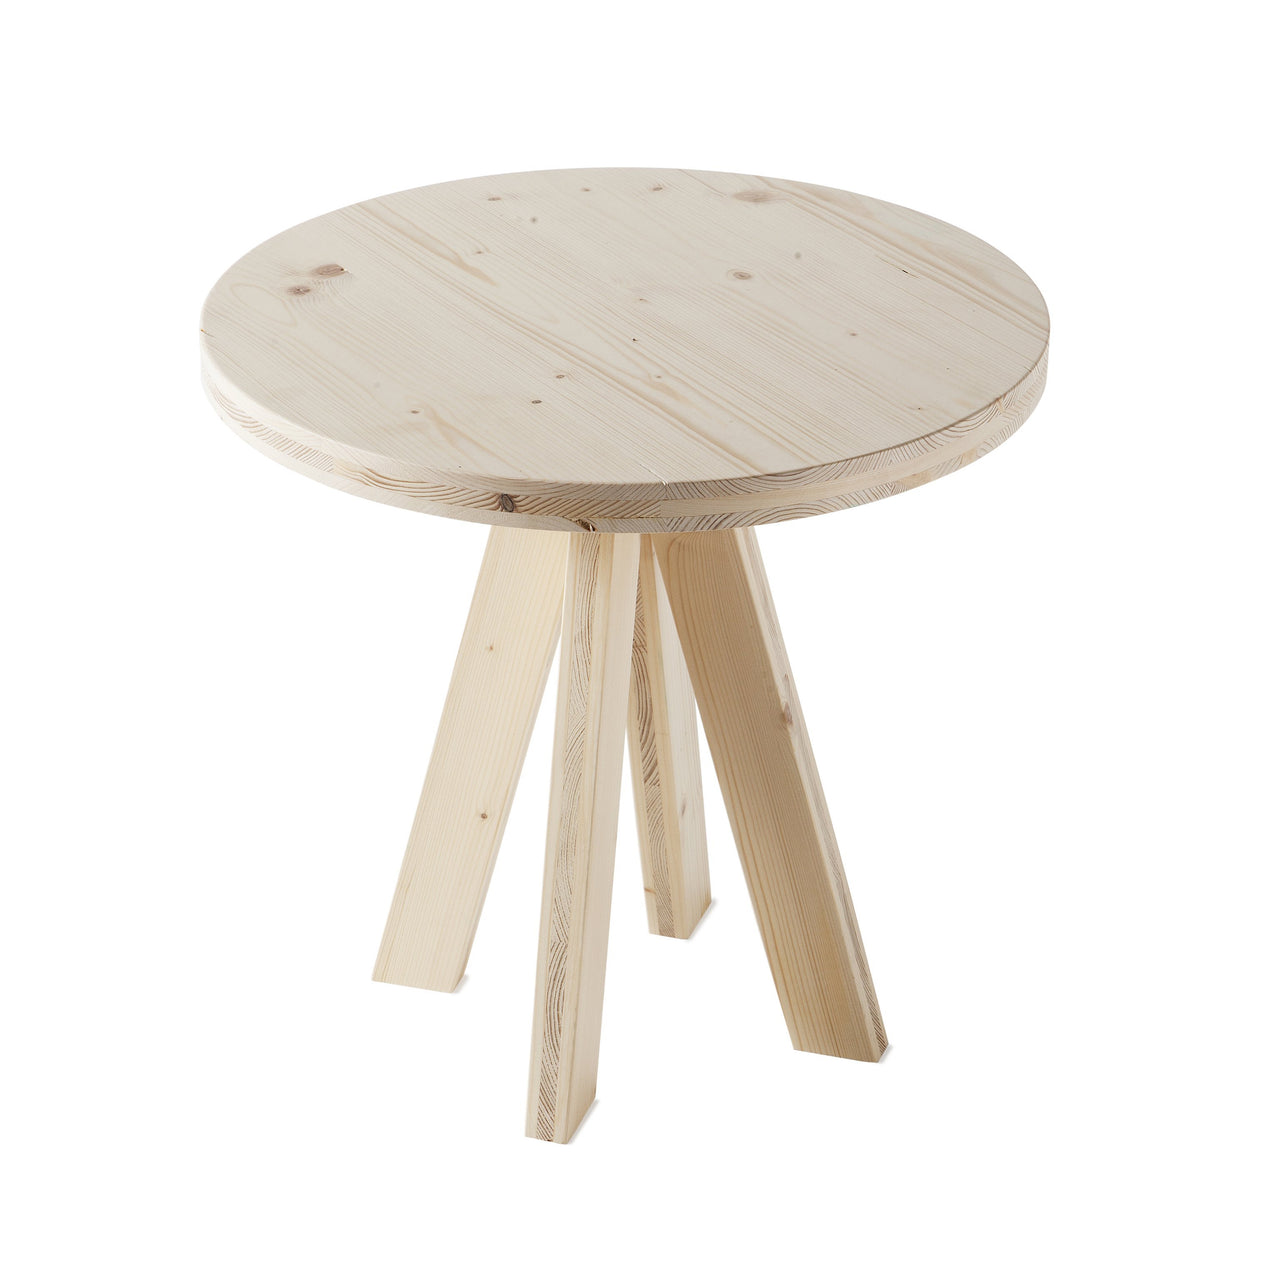 A.ngelo Coffee Table: Fir Wood